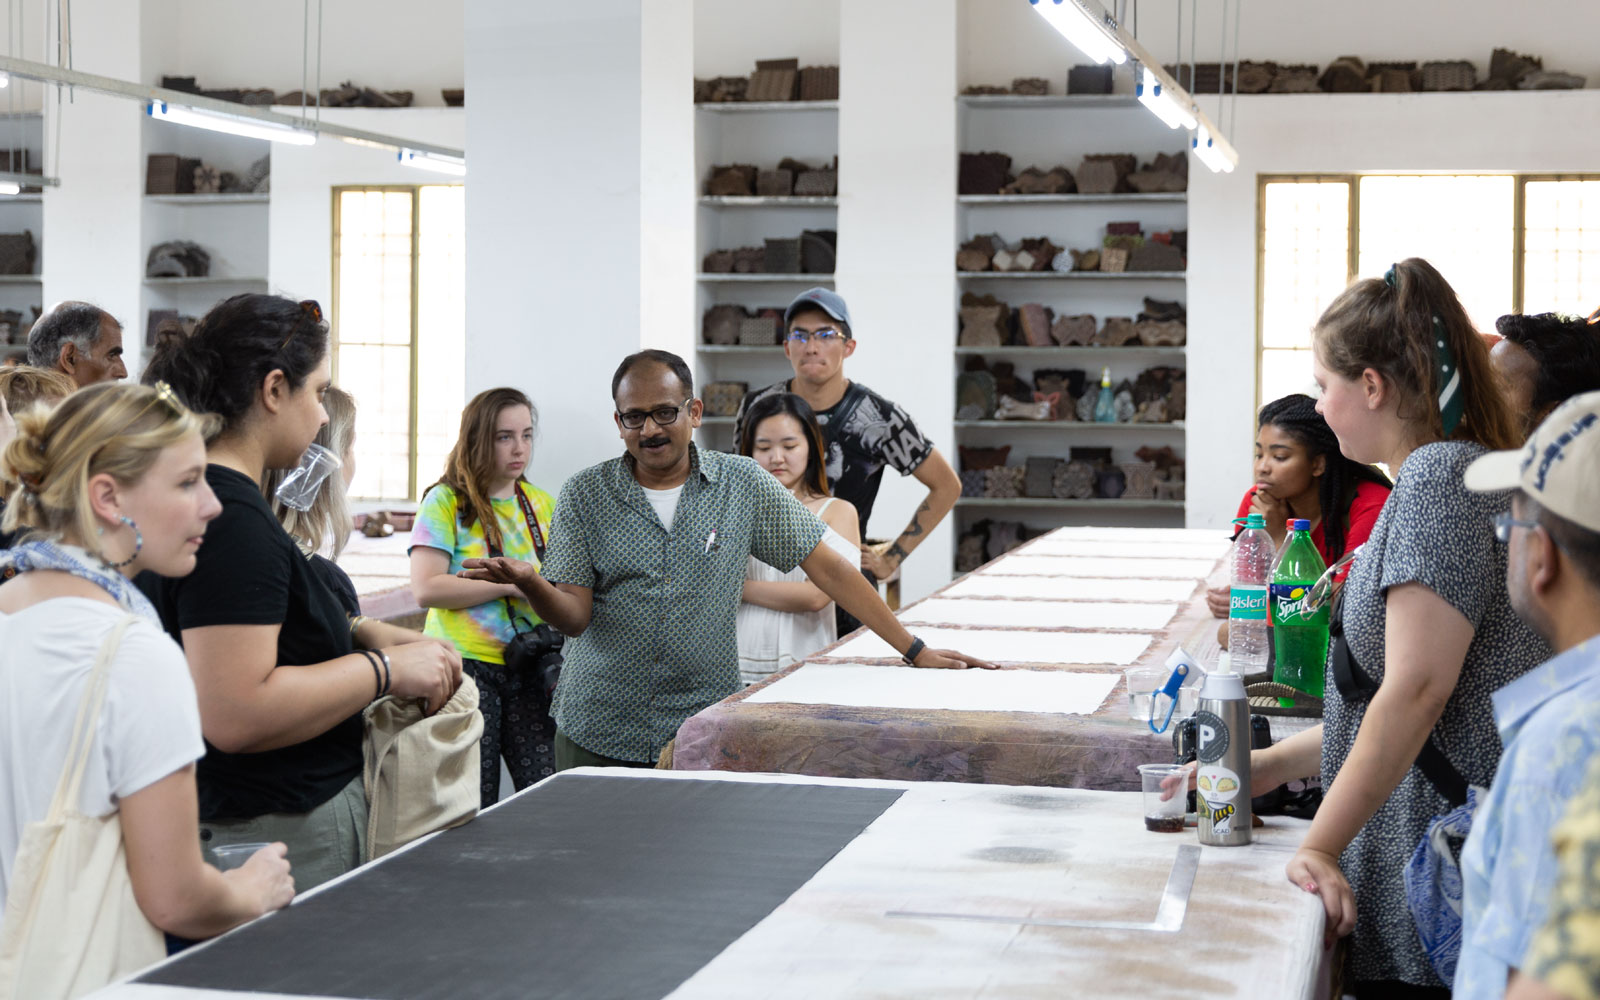 Manish Tibrewal on traditional processes and design applications at an India By Hand workshop